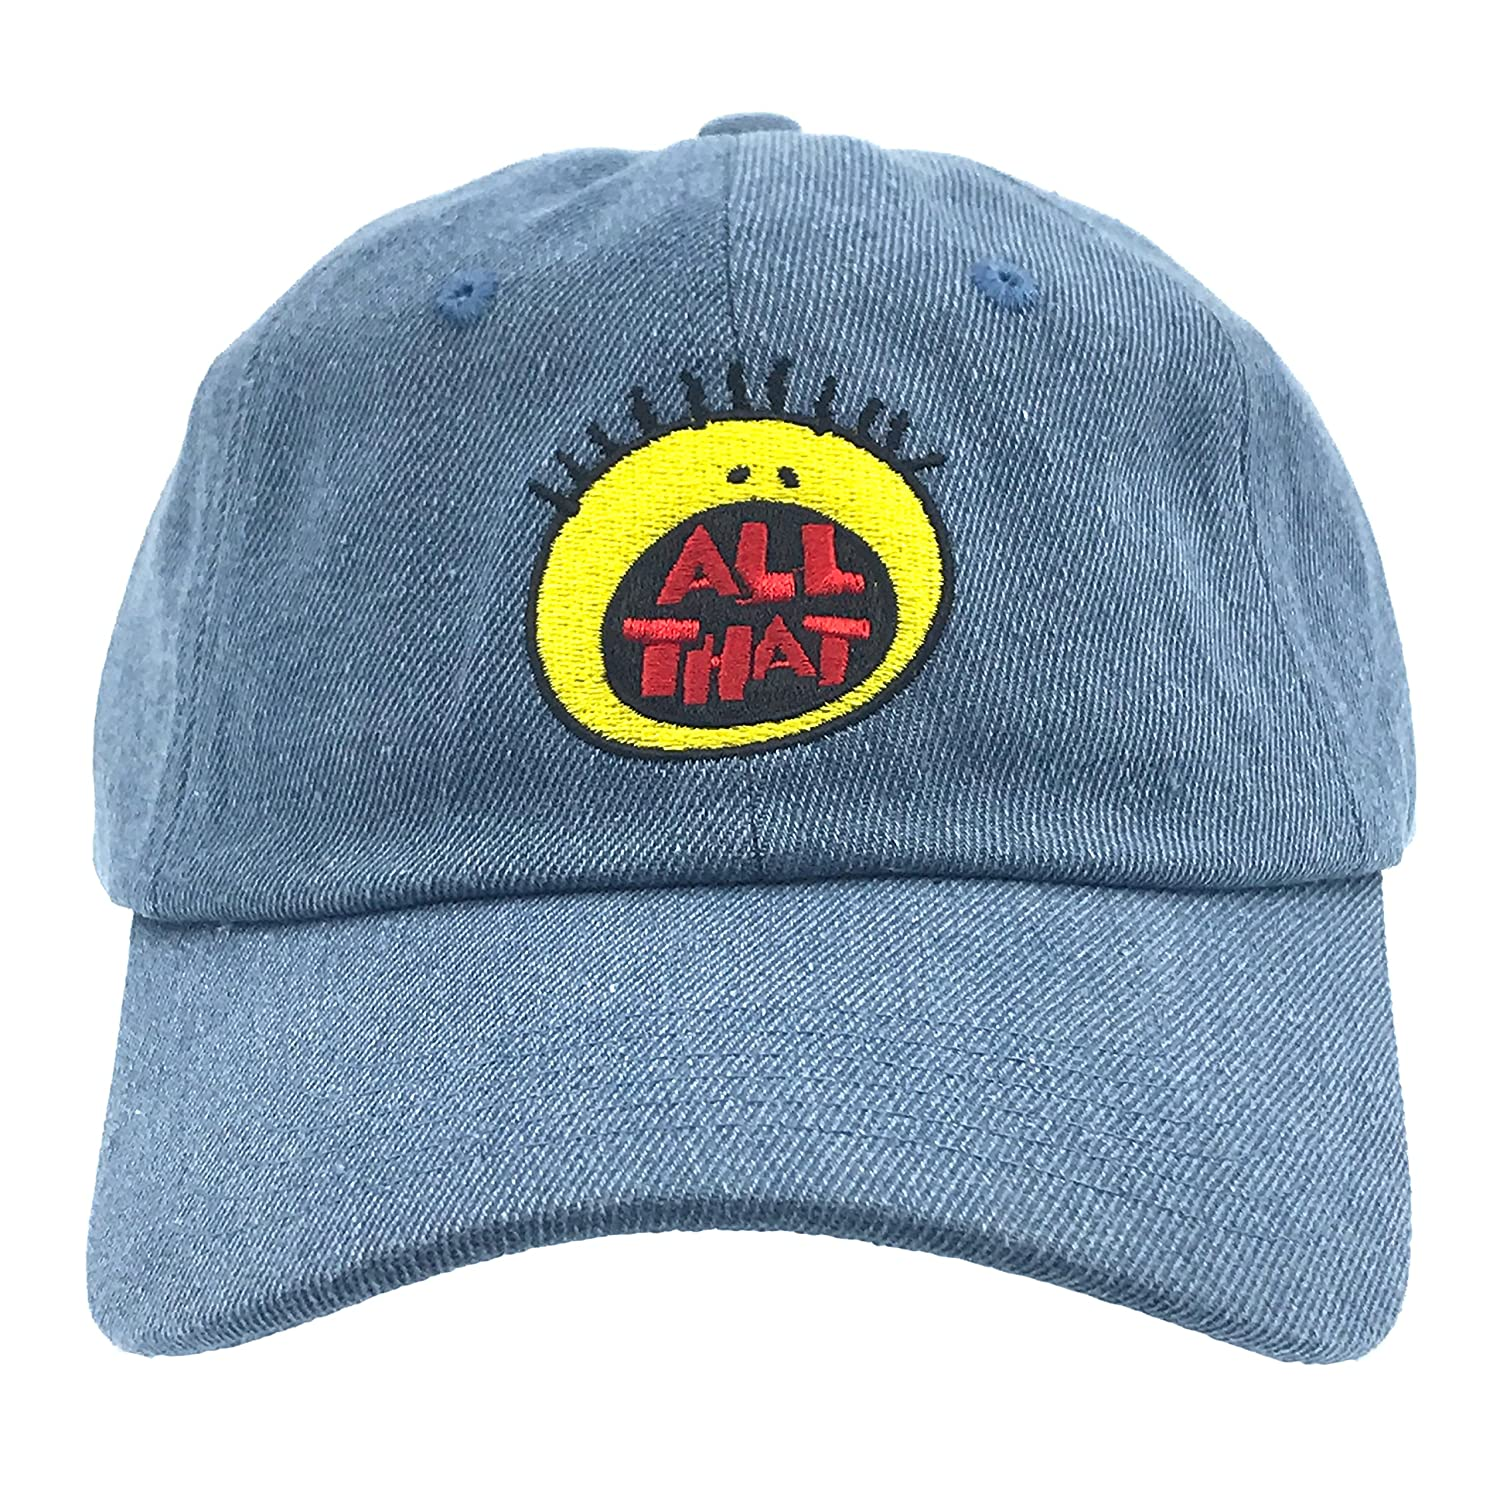 da32677e155af2 All That Hat Dad Cap 90s Baseball Adjustable Snapback Denim at Amazon Men's  Clothing store: